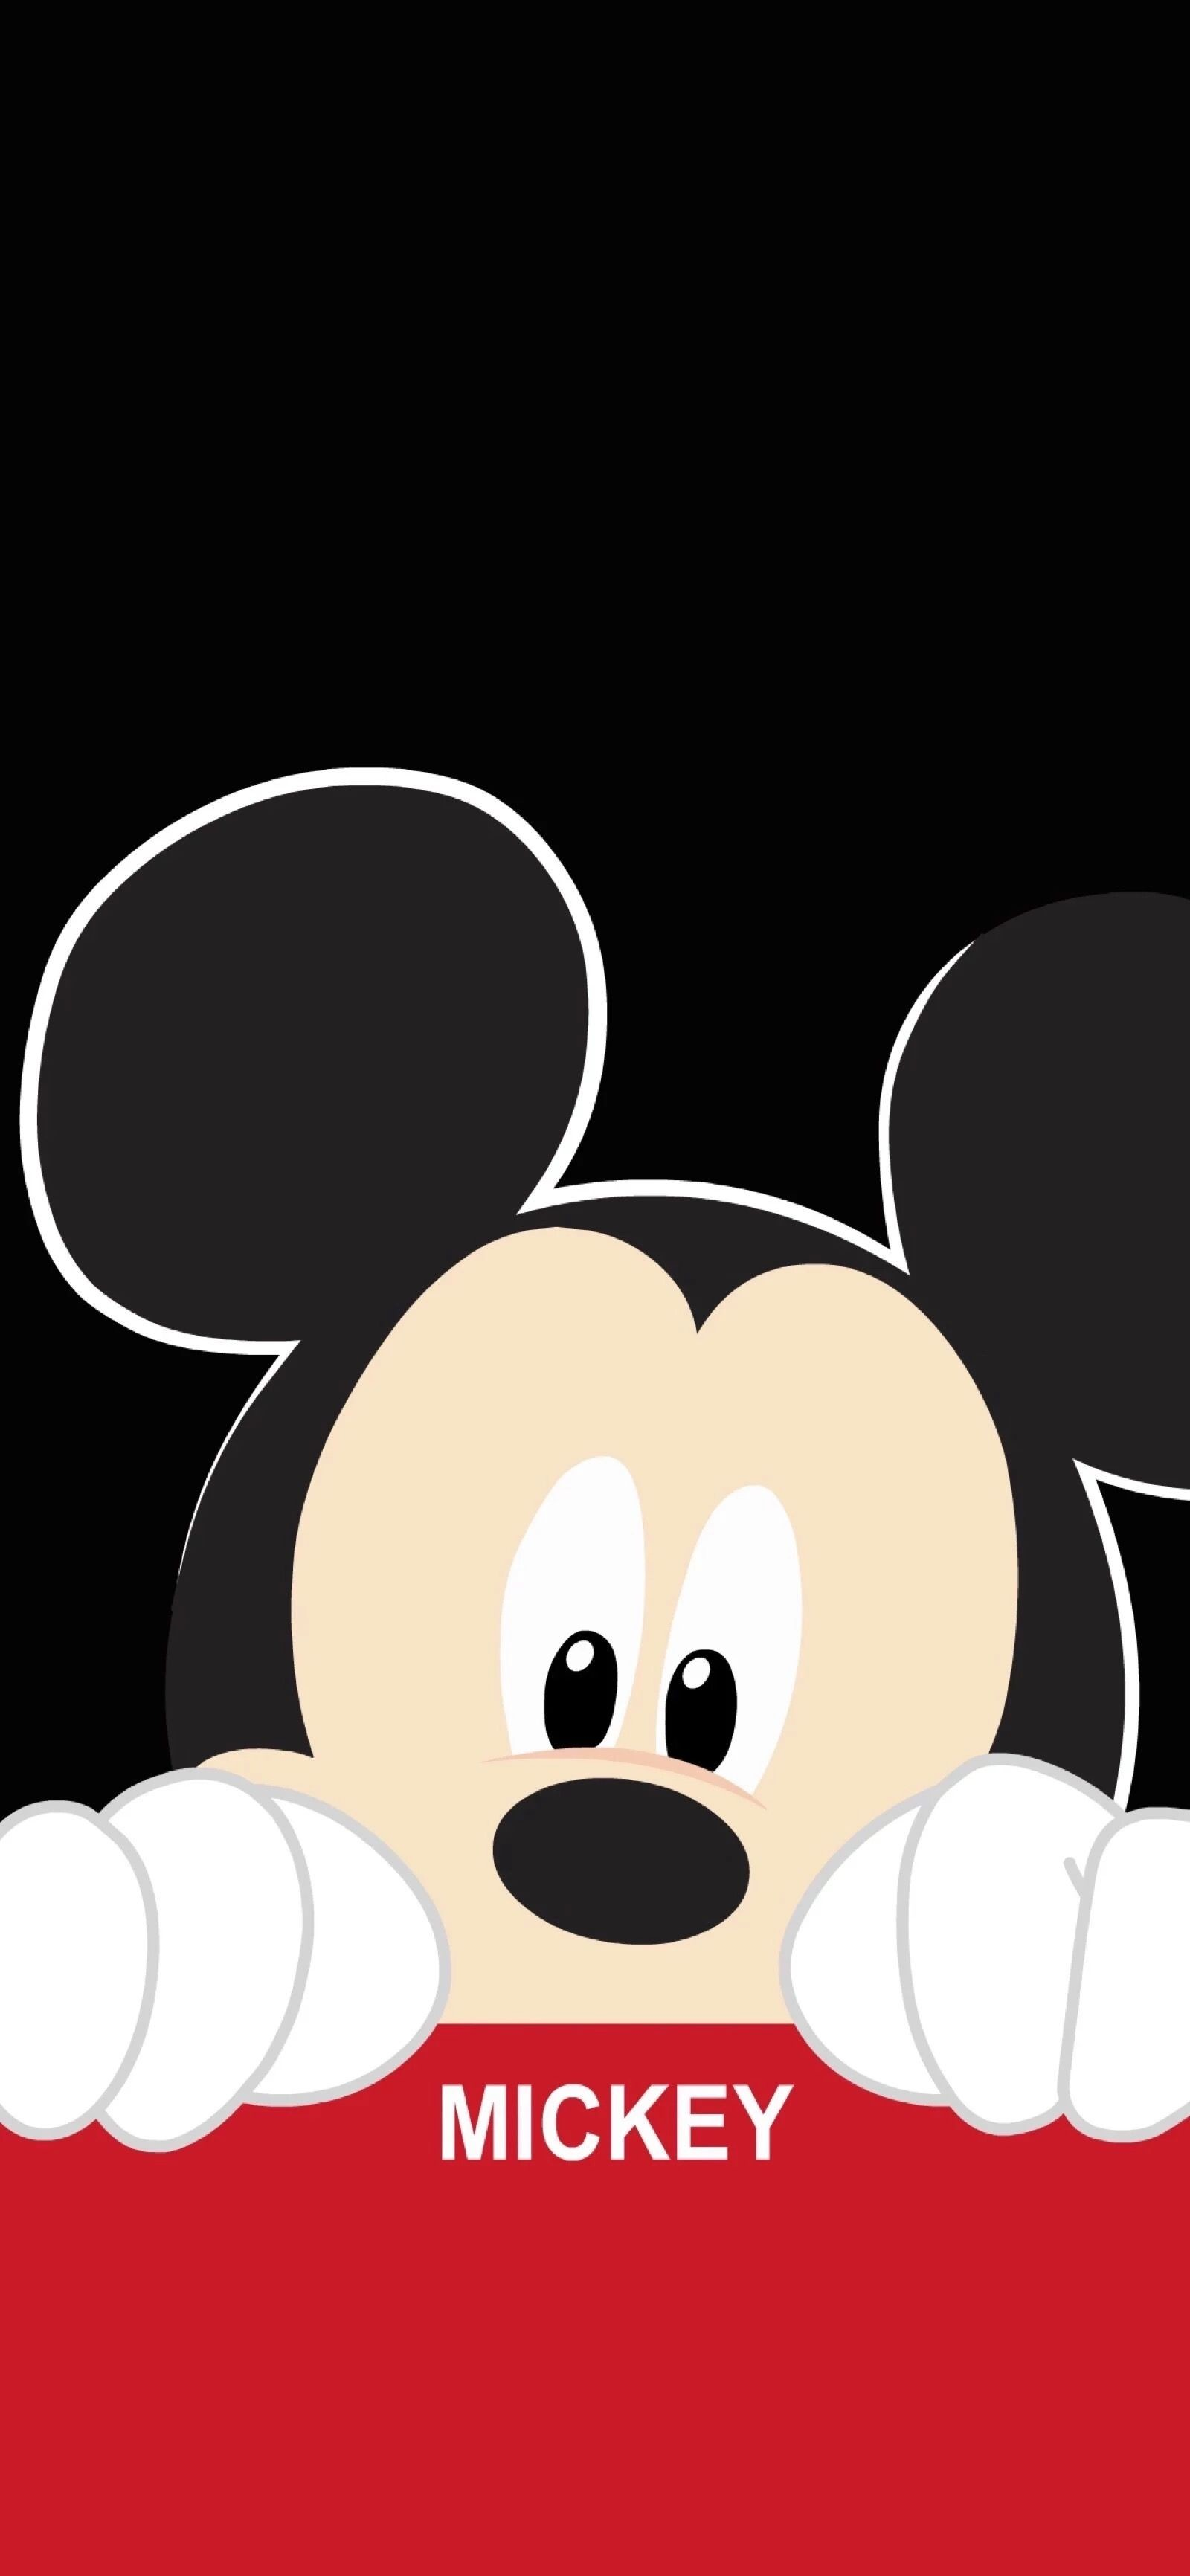 1513821 mickey mouse wallpaper for iphone 1600x3464 mac